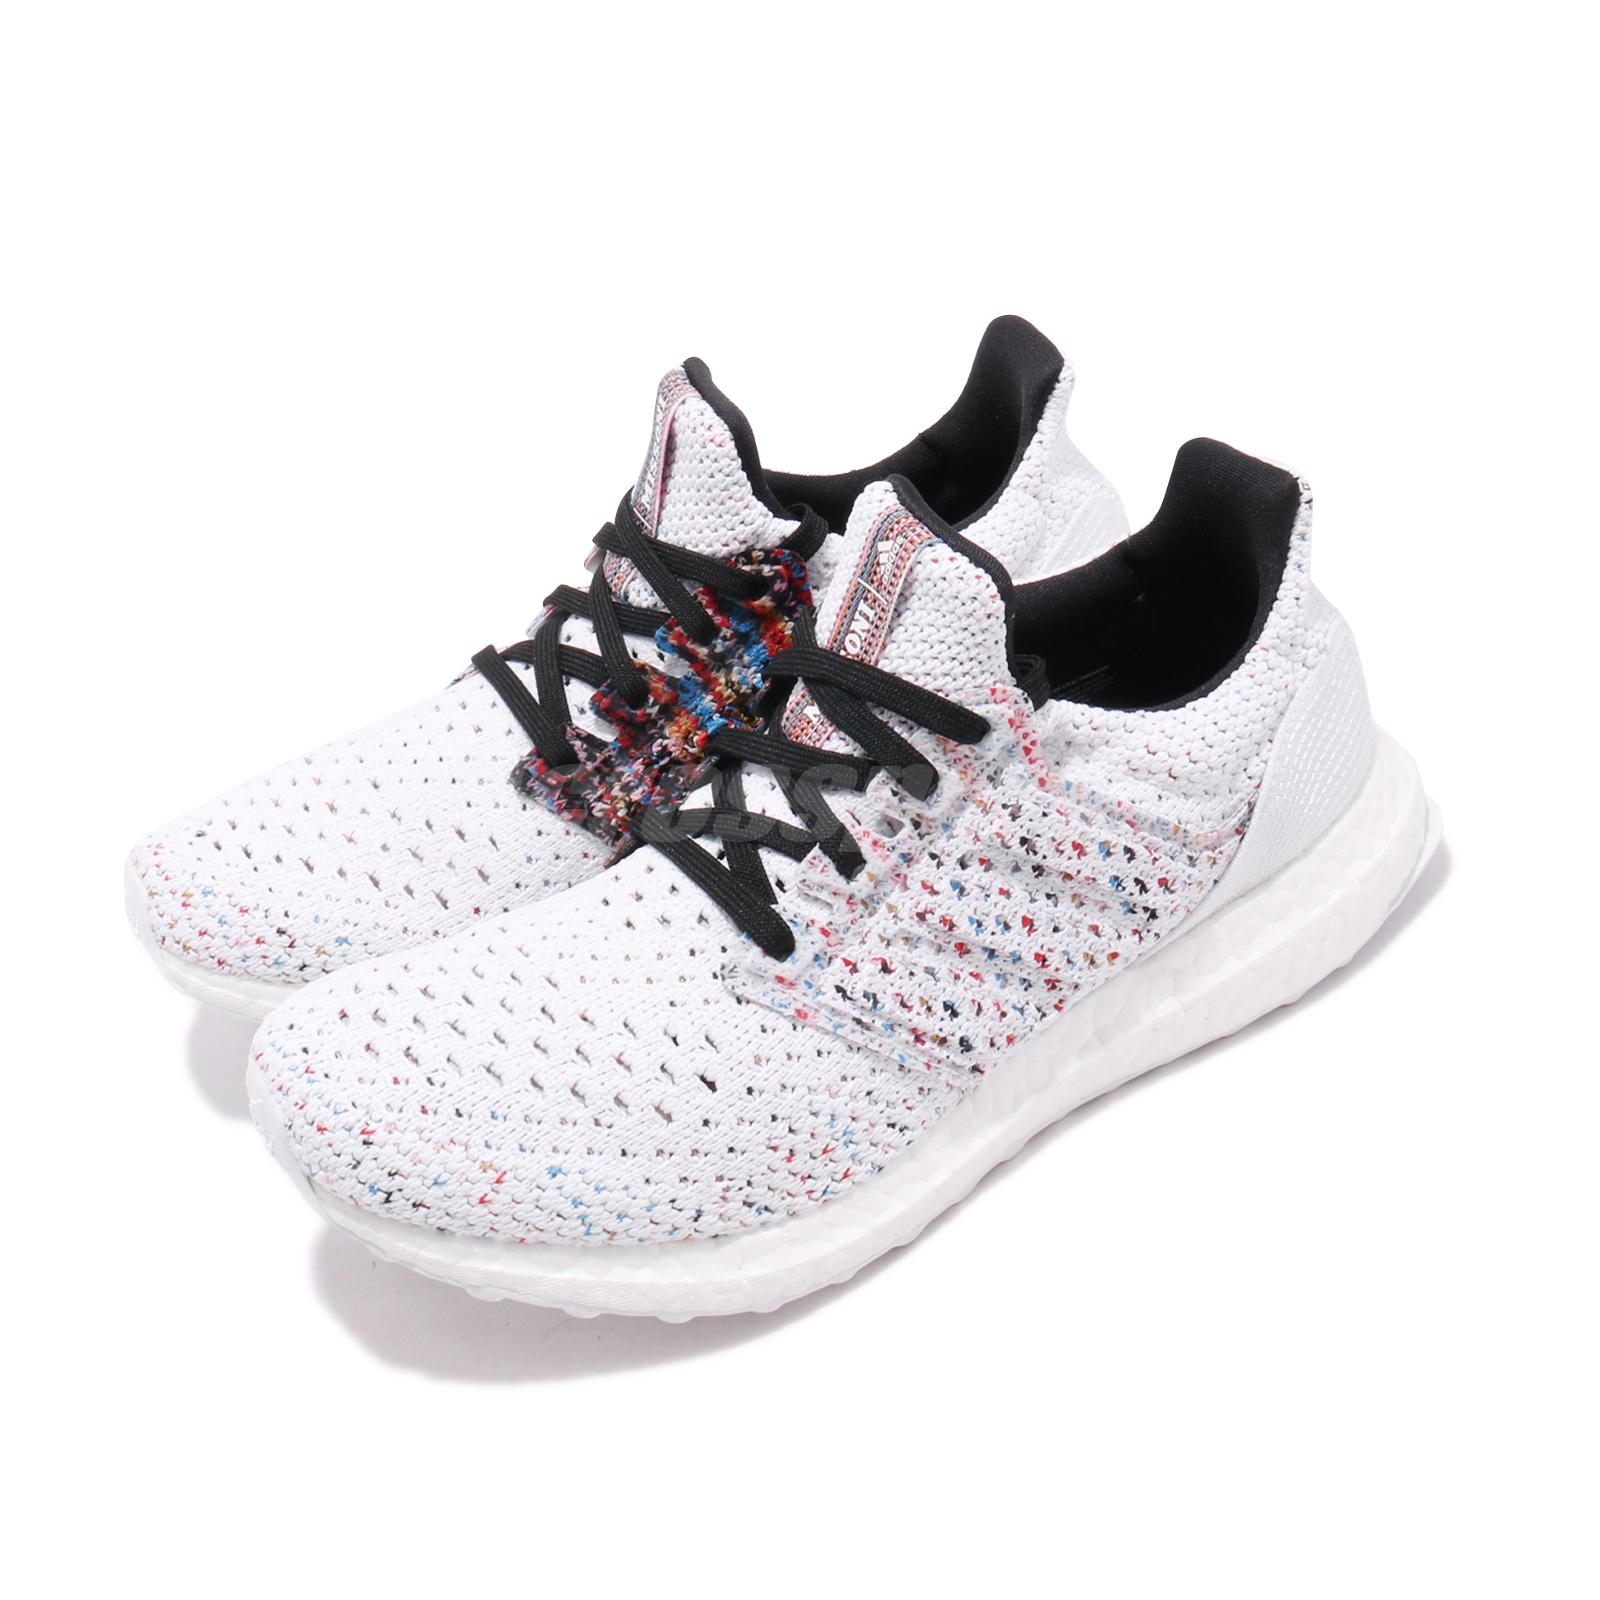 super popular b70b5 f2f3a Details about adidas Ultraboost Clima M Vs. Missoni White Multicolor Men  Running Shoes D97744